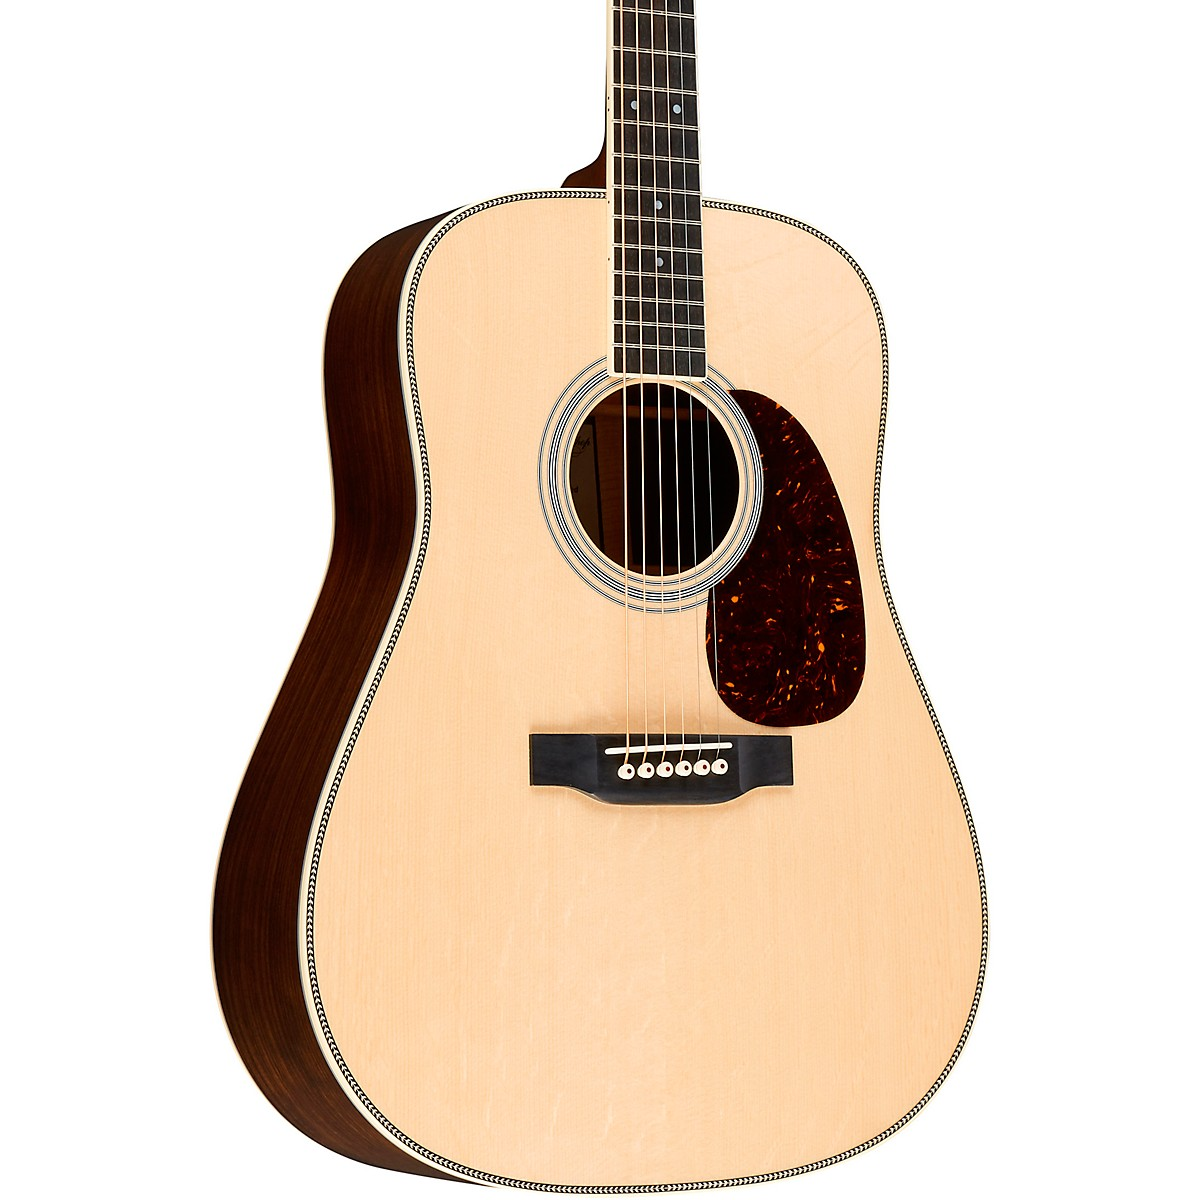 Martin Special 35 Style Bearclaw Engelmann Spruce Top Dreadnought Acoustic Guitar